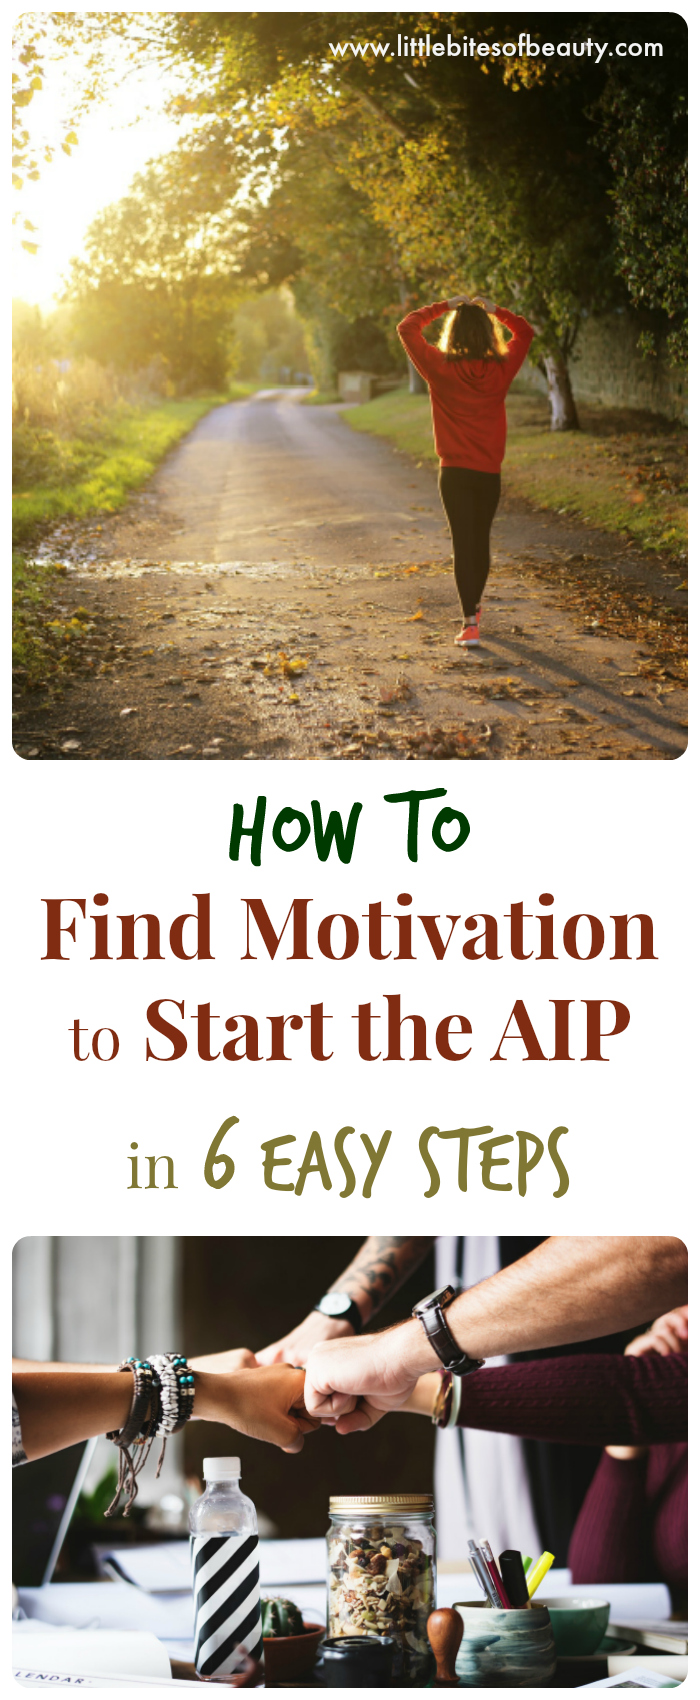 How to Find Motivation to Start AIP in Six Easy Steps